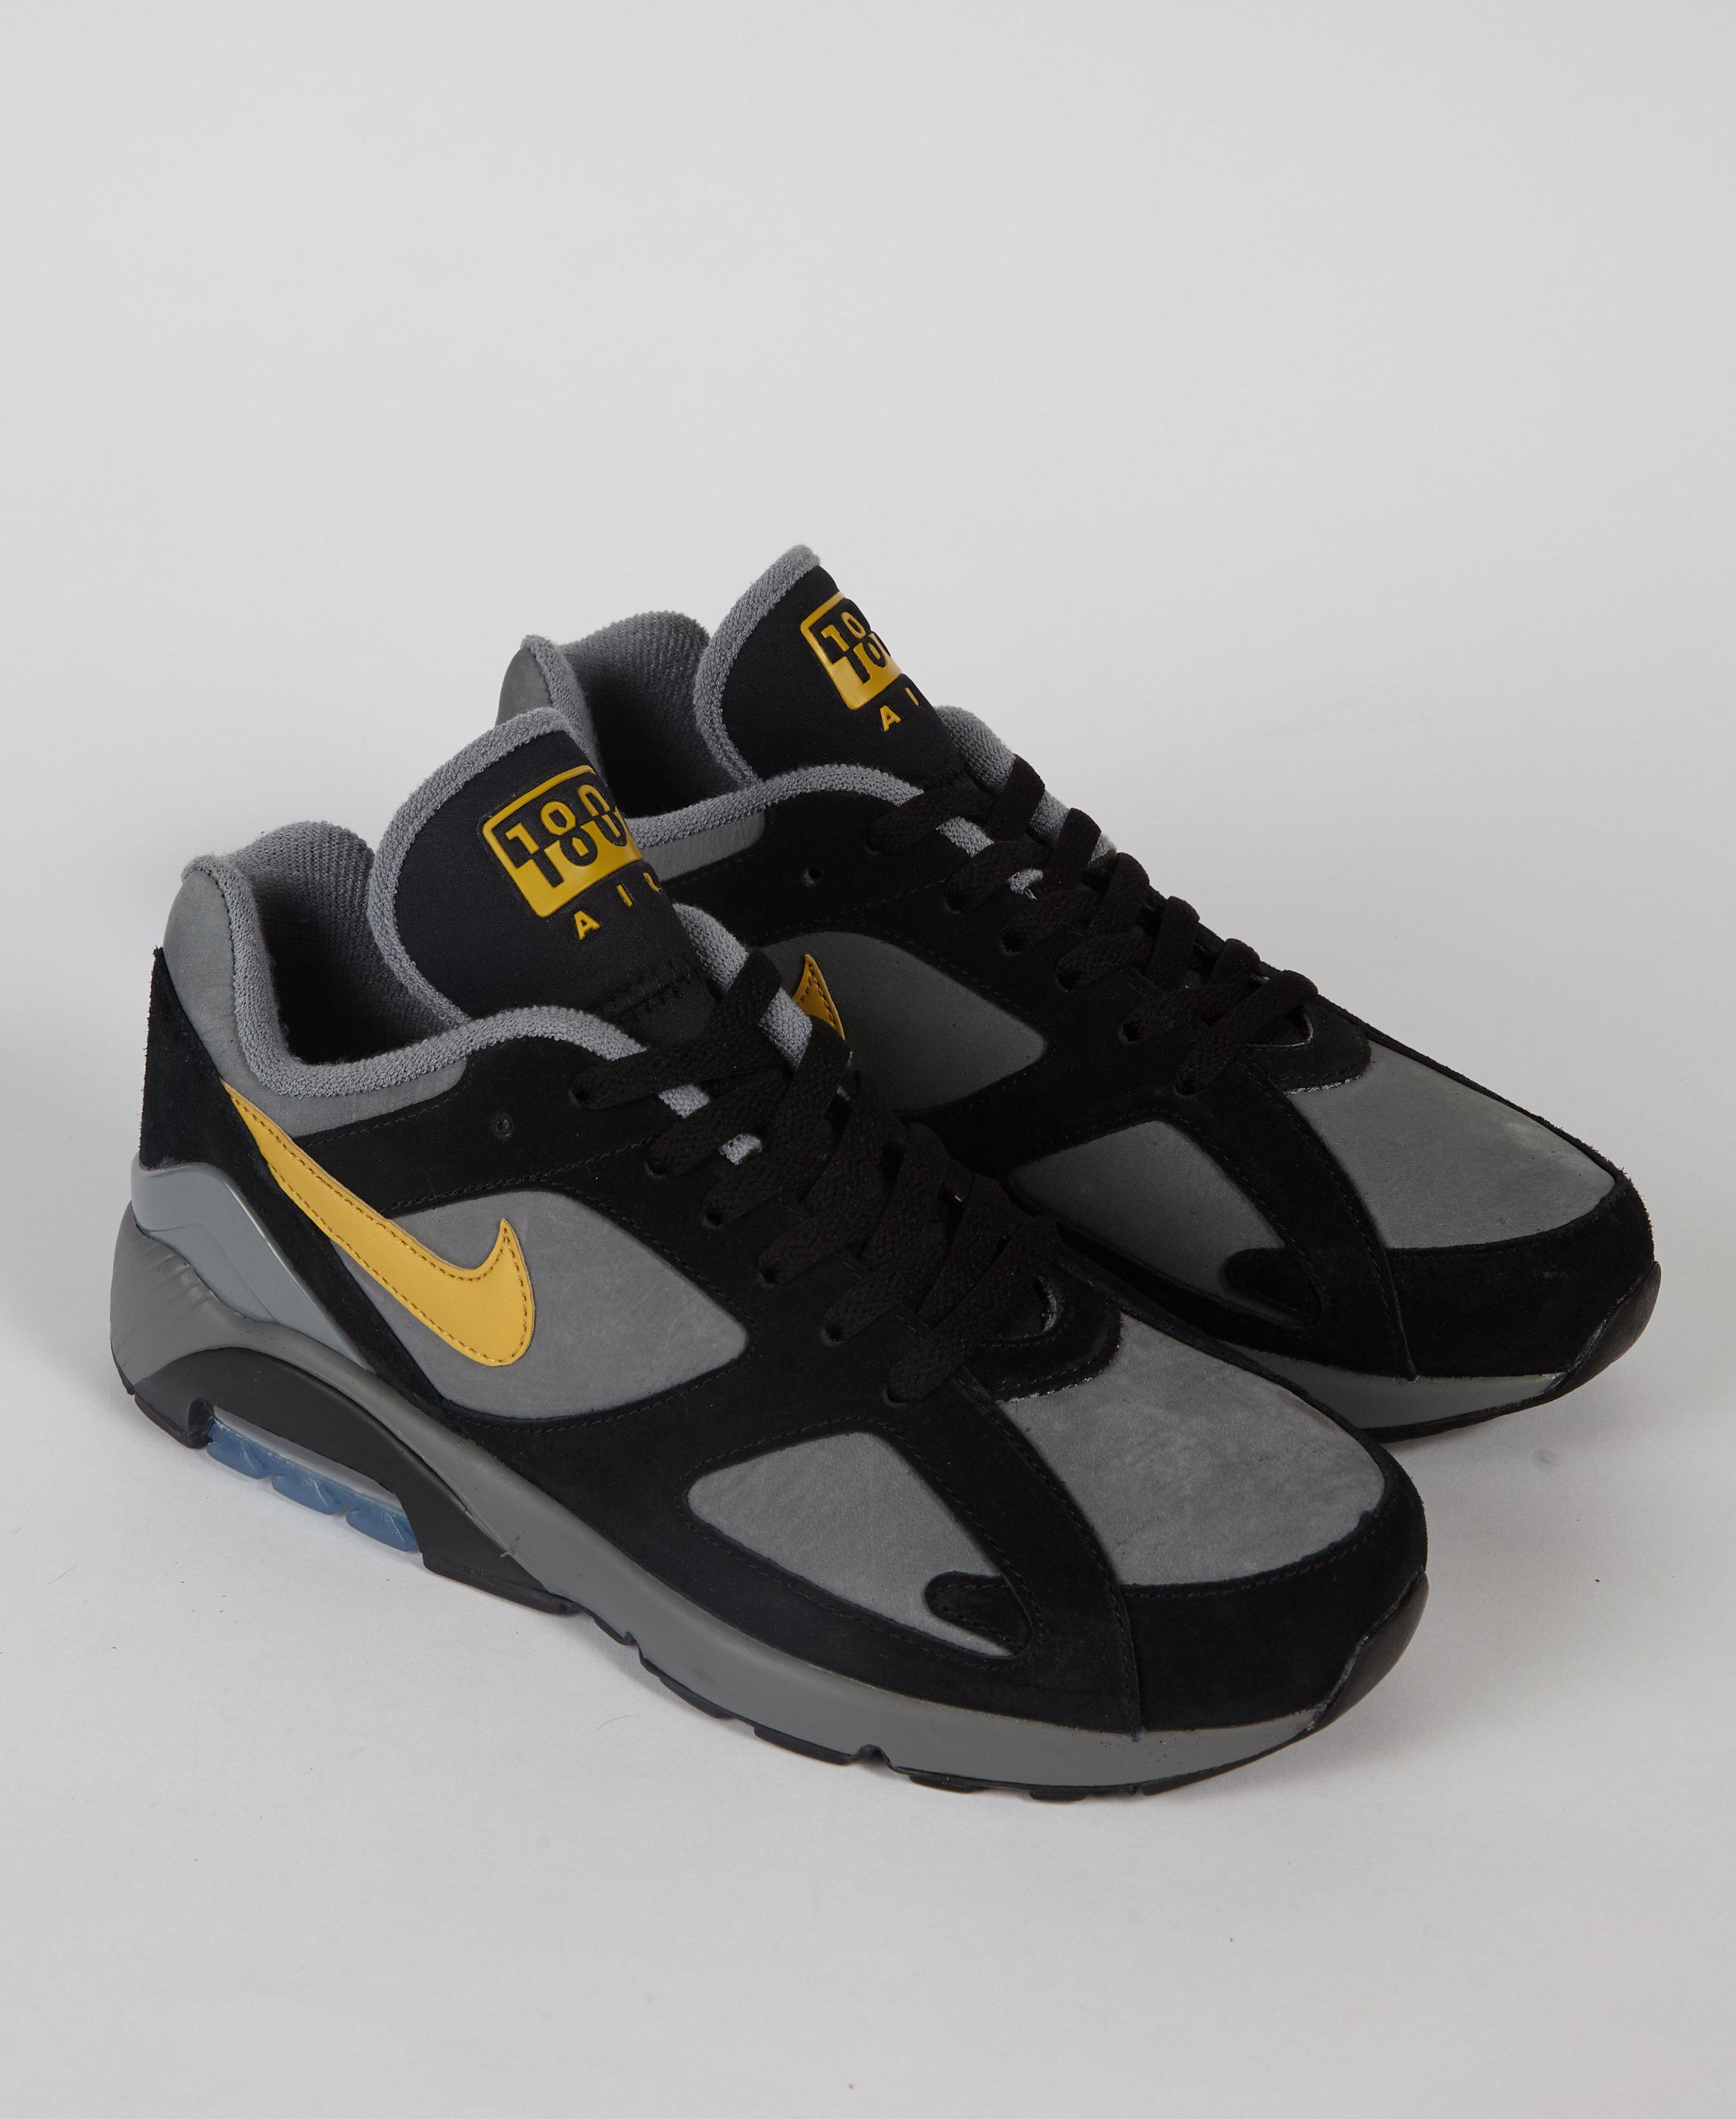 20a6cfb8650c Nike Air Max 180 Cool Grey   Black   Gold in Black for Men - Lyst